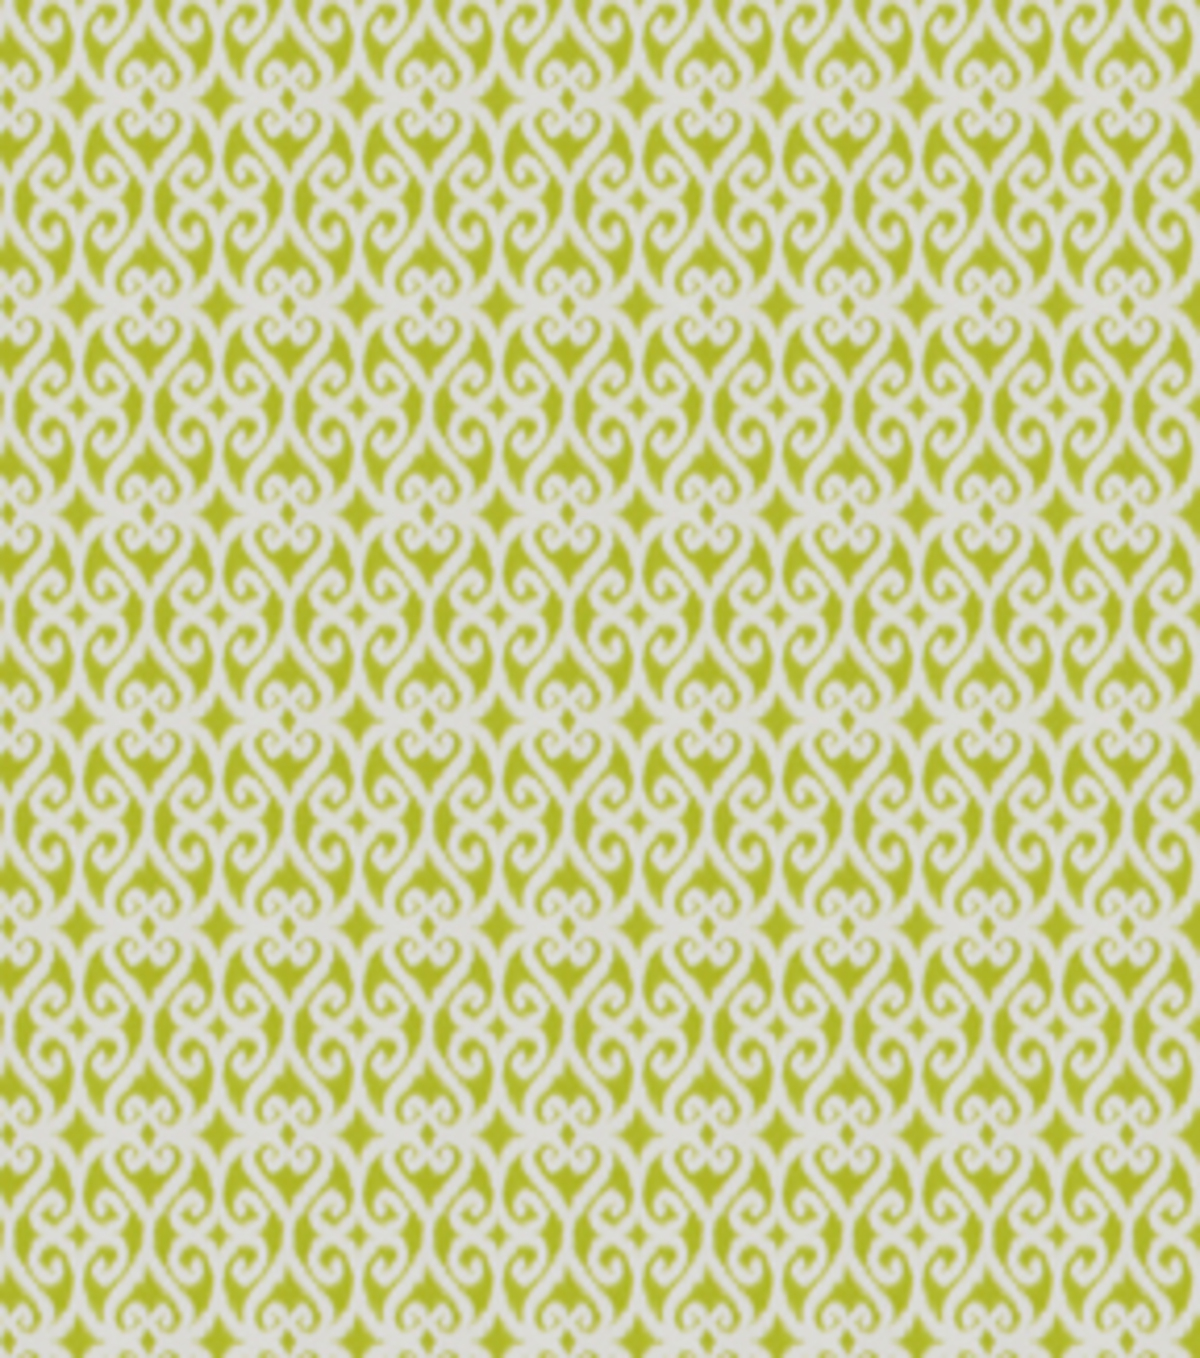 Outdoor Fabric-Tropix Mini Frodo Fresco Lime